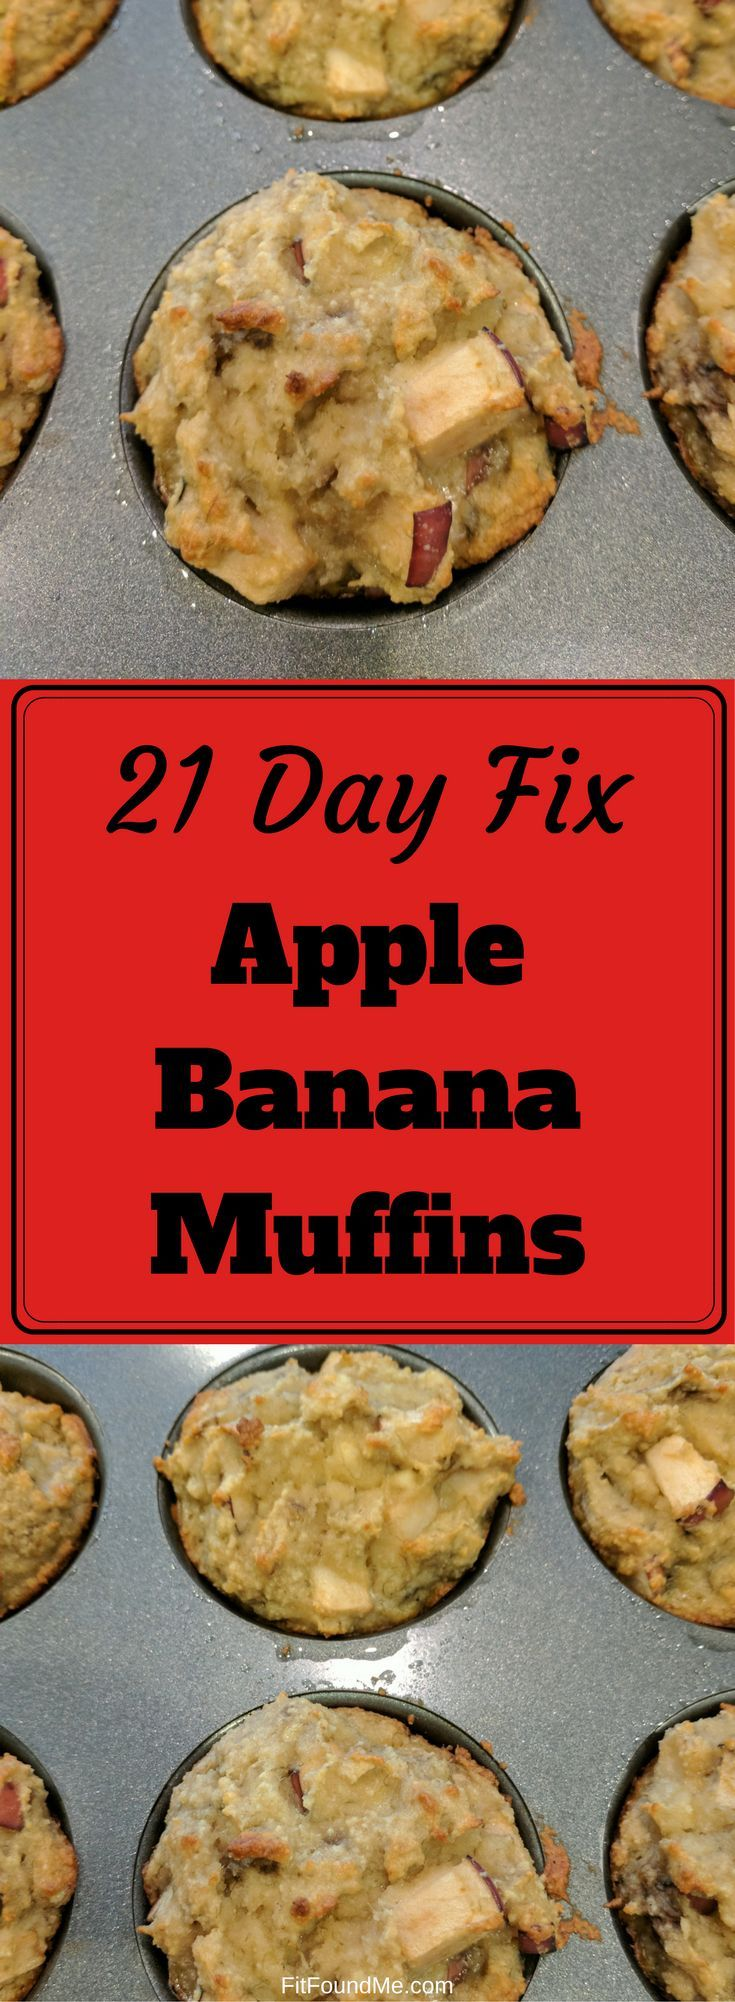 21 day fix approved fall comfort or anytime apple banana muffins! Using almond flour and other healthy ingredients. #21dayfix #healthymuffins #healthysnacks #lowcarb